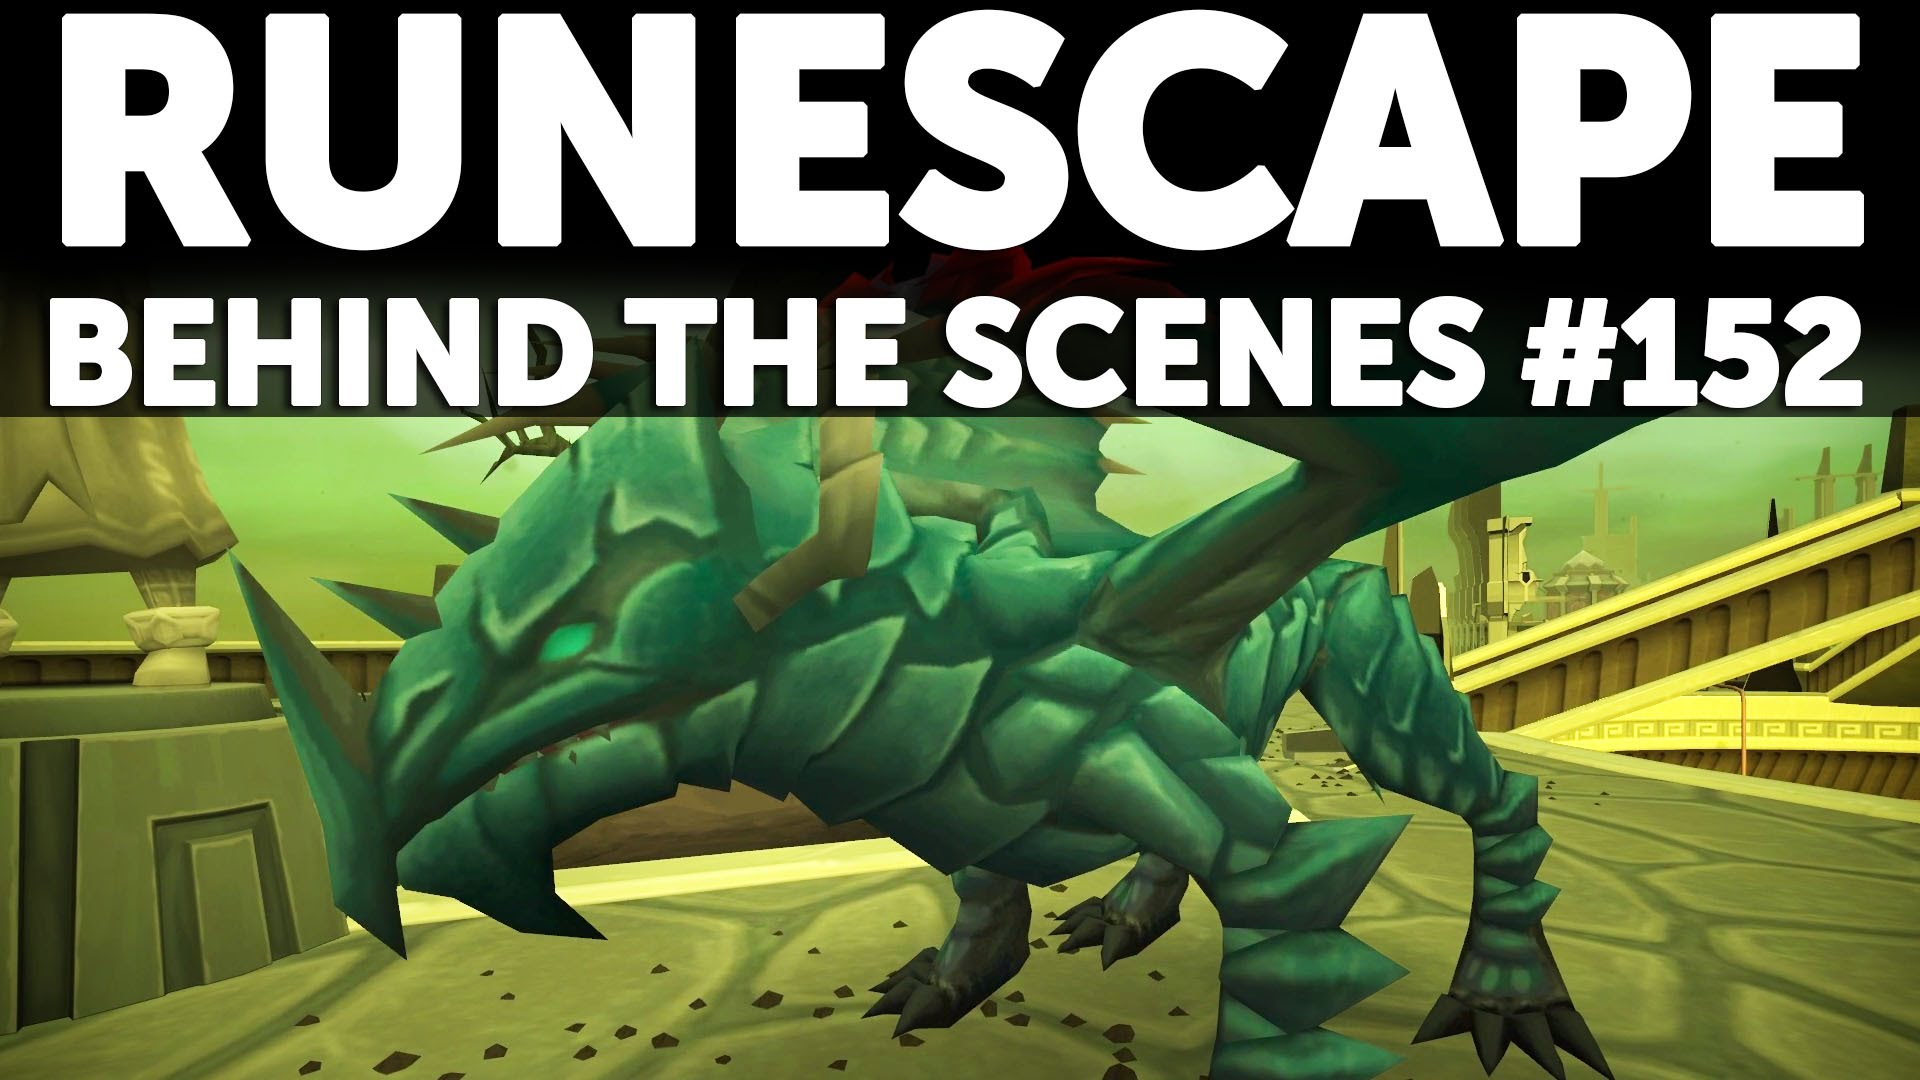 RuneScape Behind the Scenes #152 Video Thumbnail